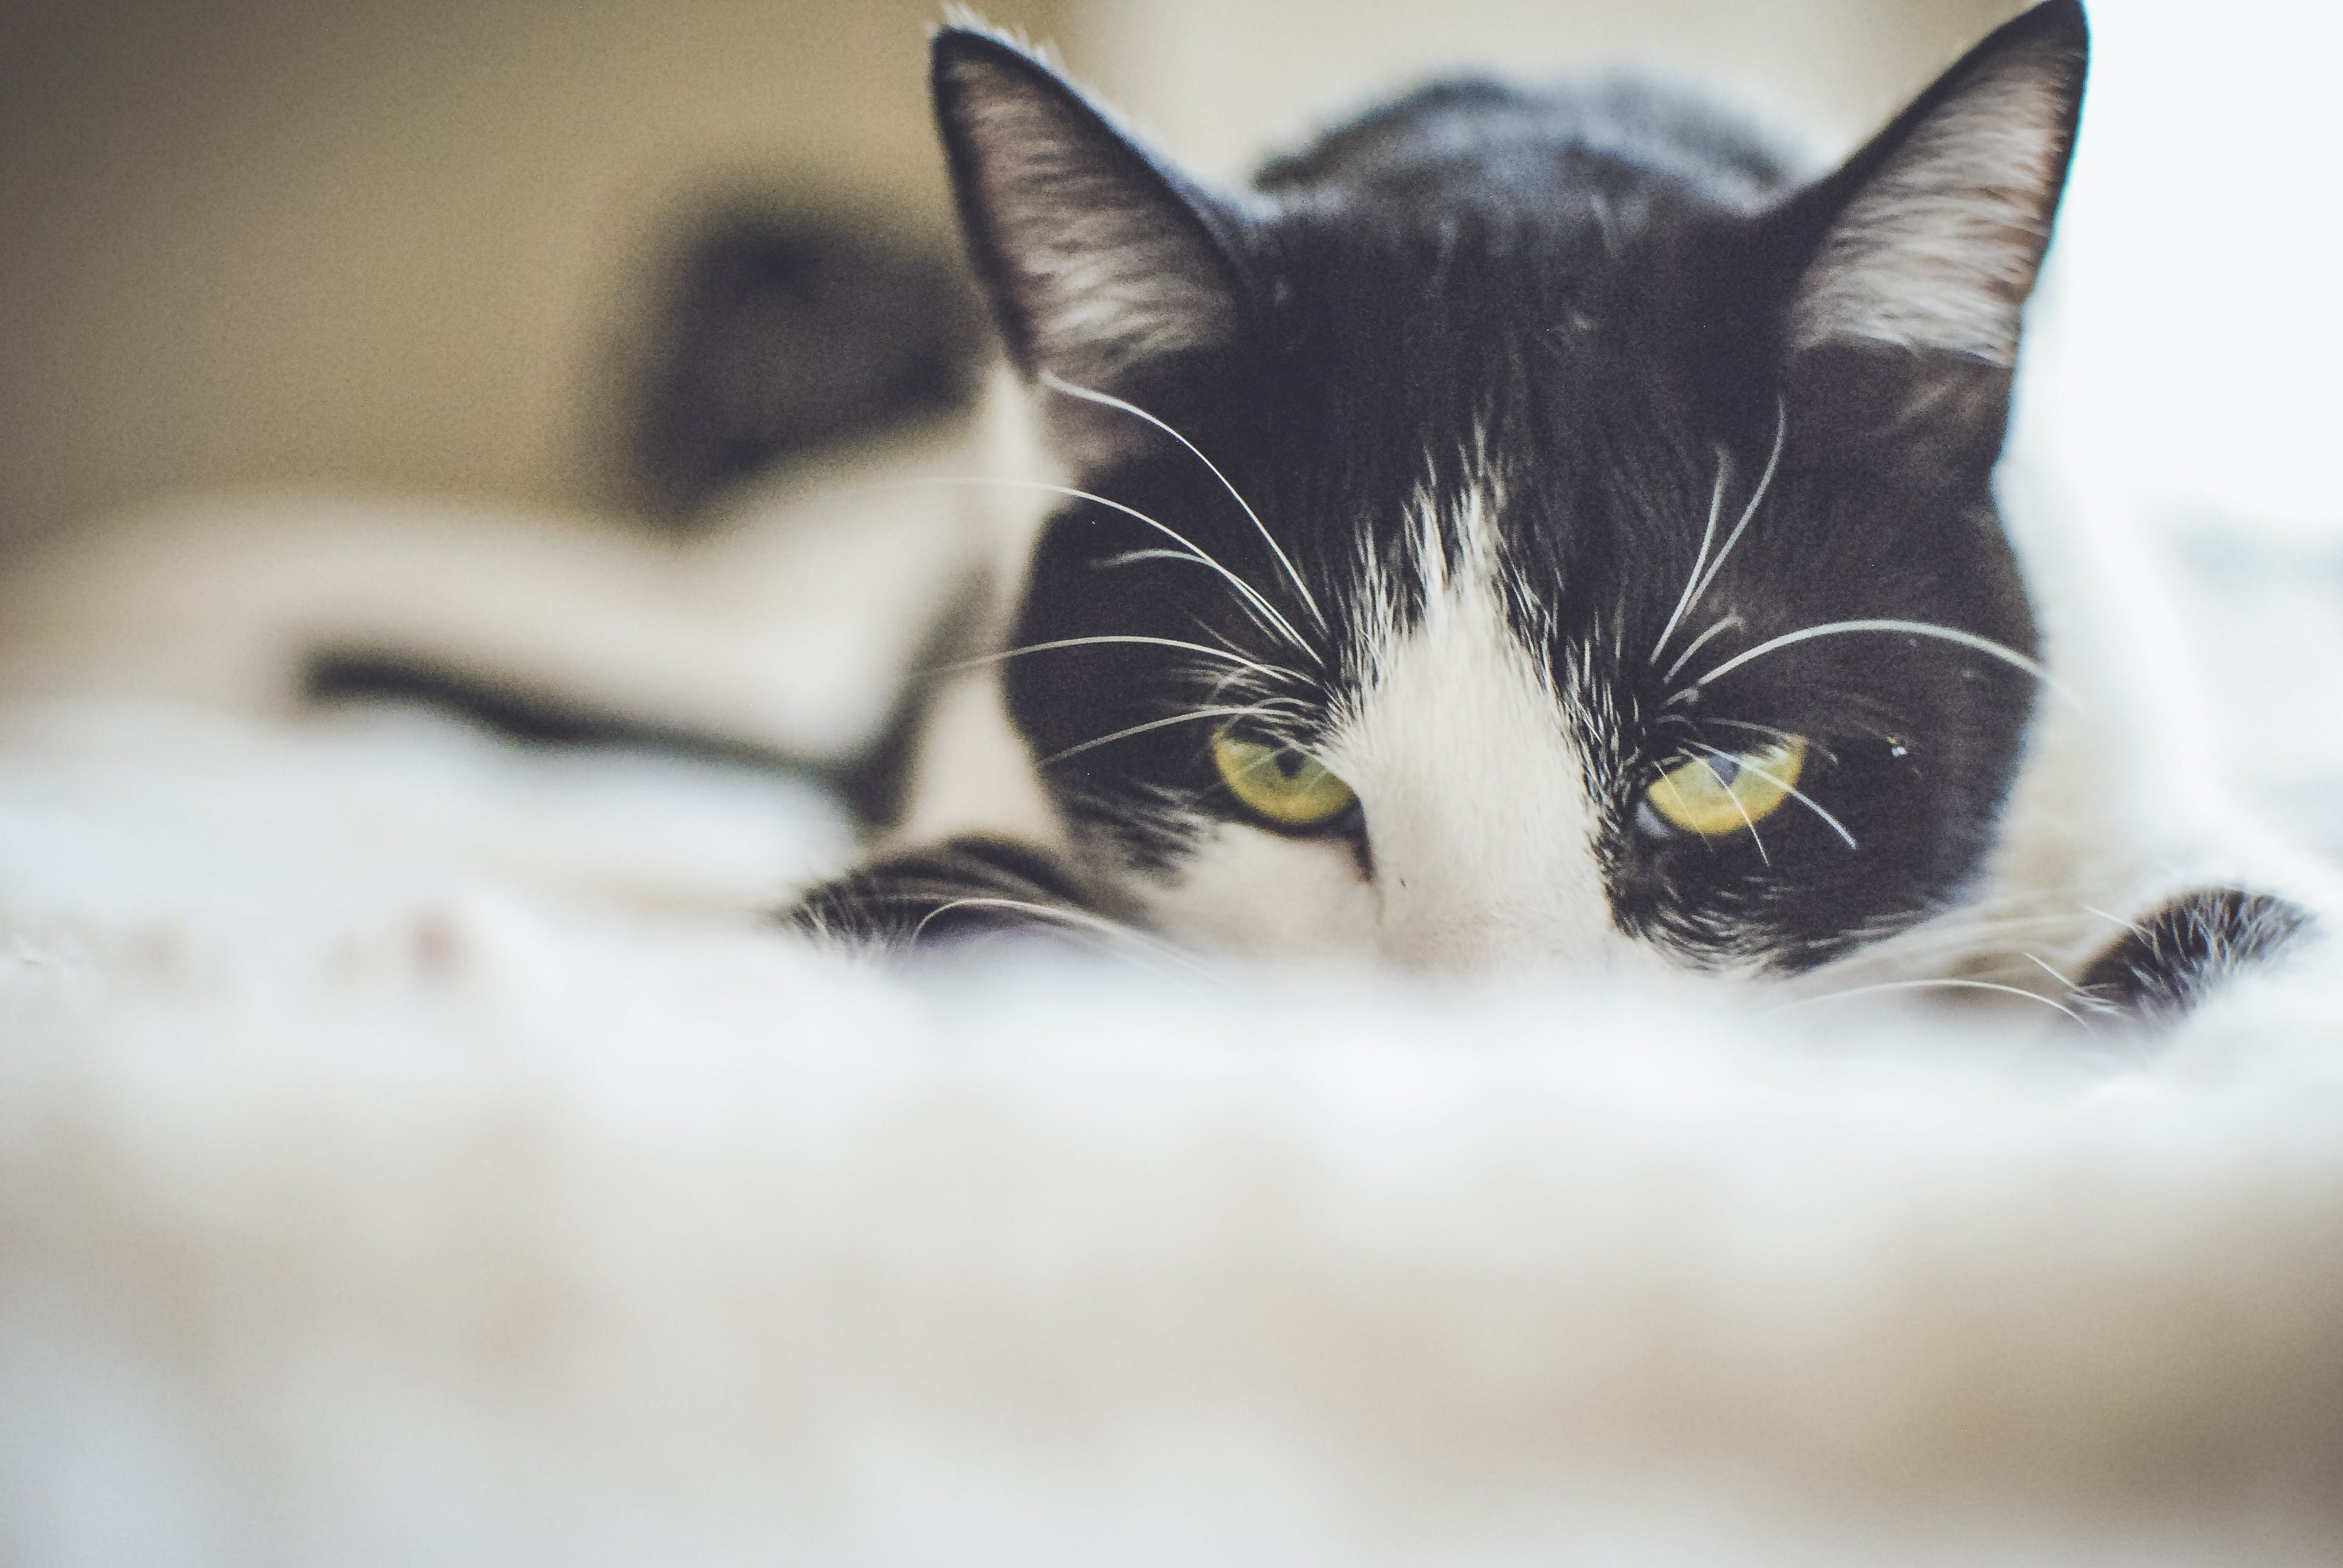 Close-up Photography of a Tuxedo Cat